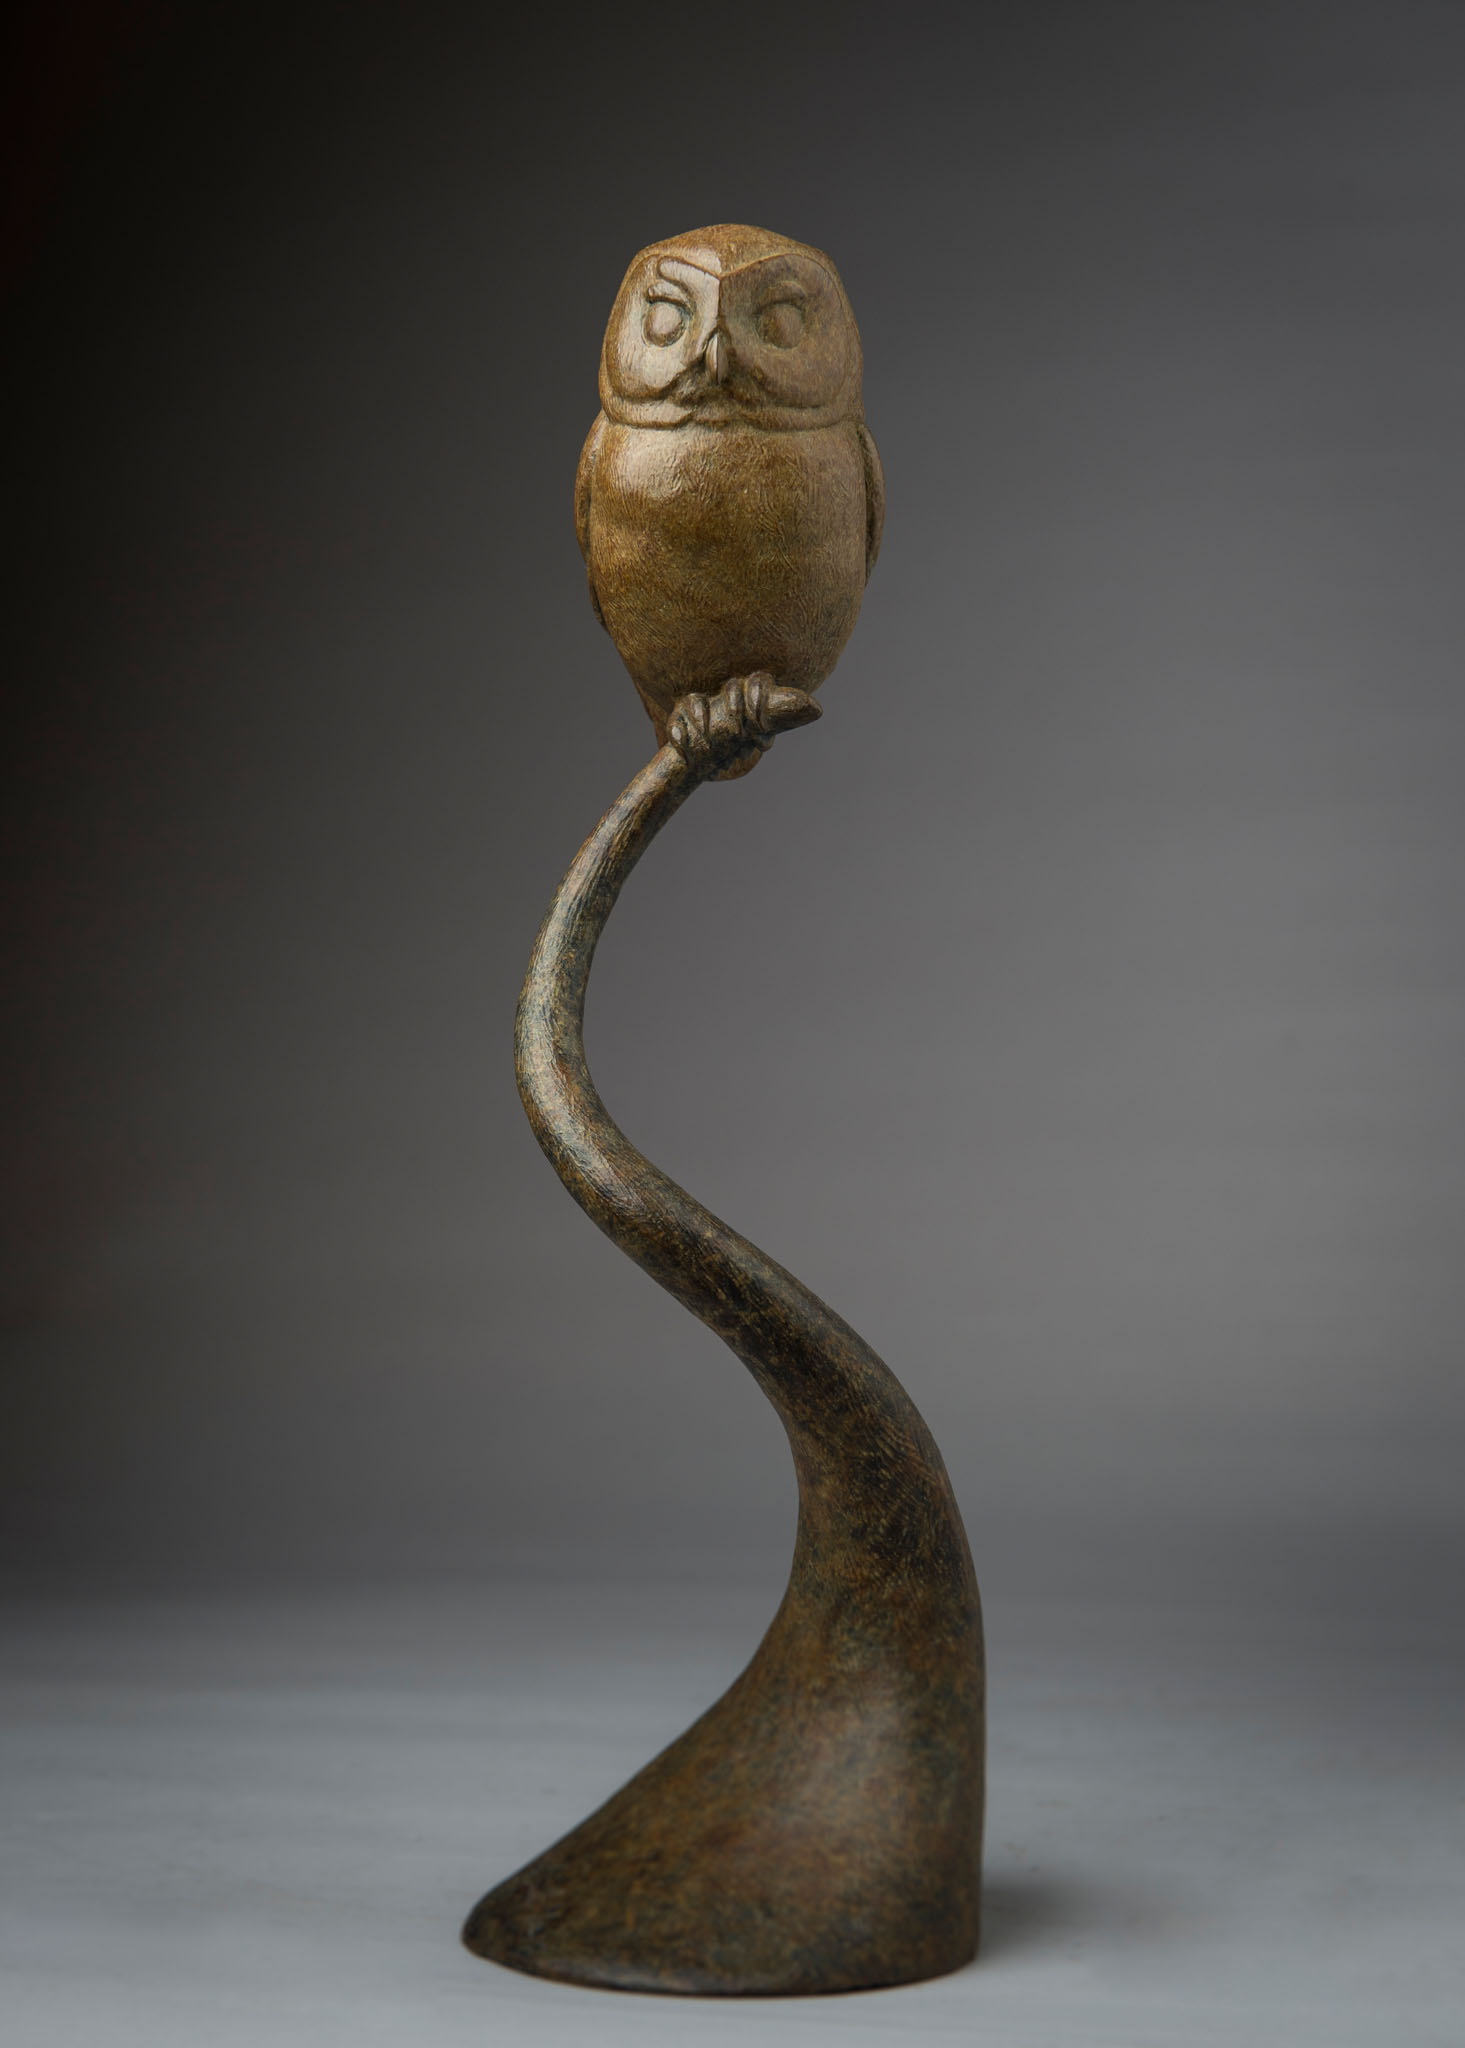 Bronze sculpture of a Saw Whet Owl by artist Anthony Smith